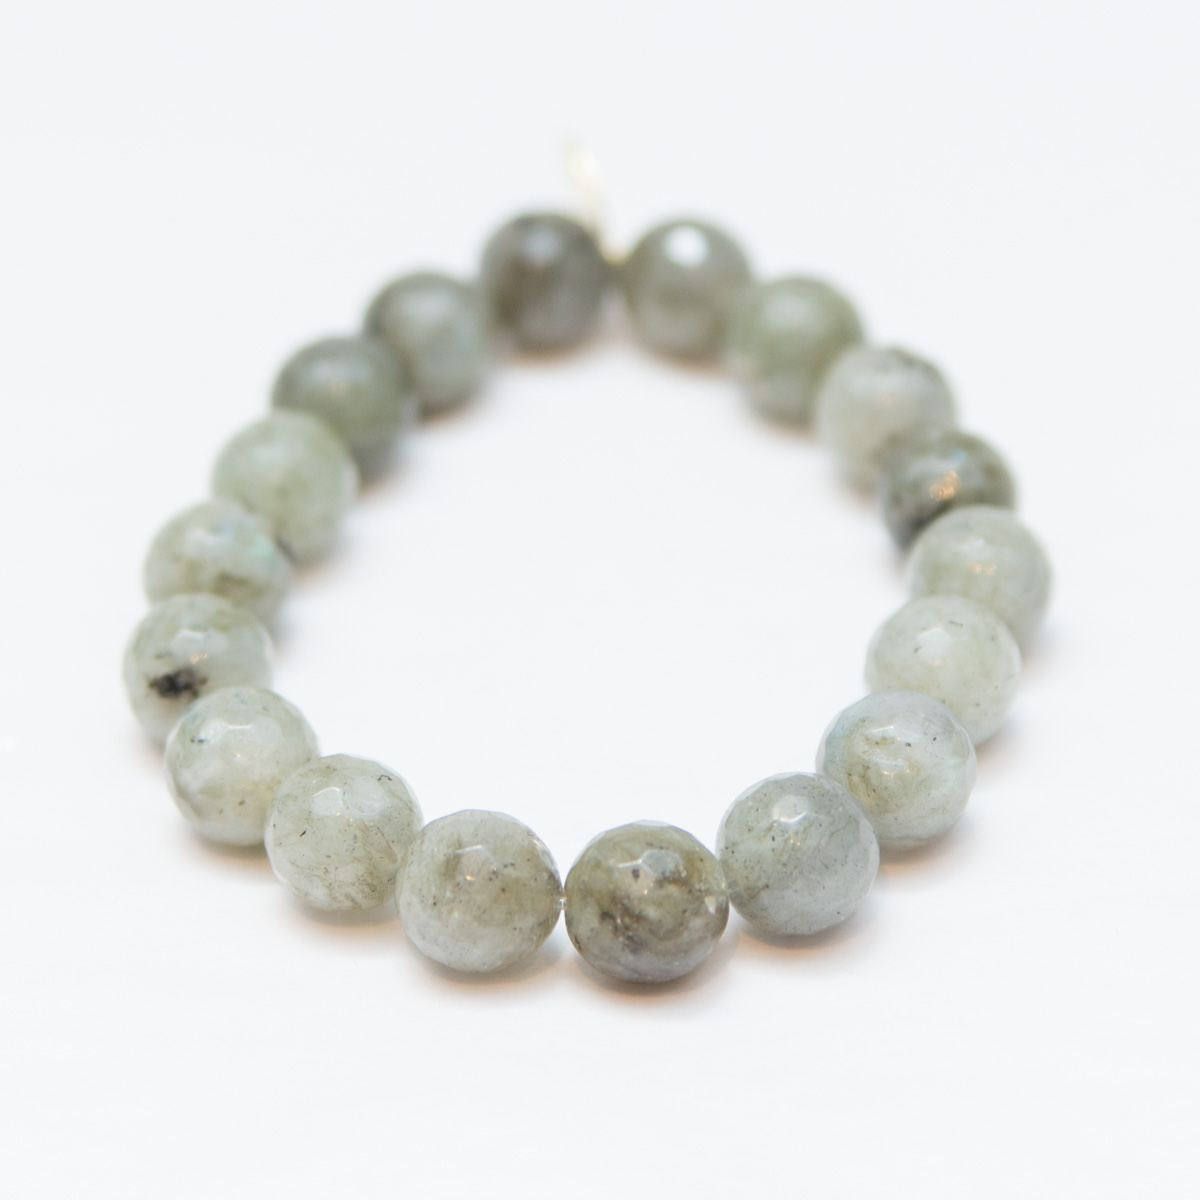 Labradorite - Labradorite is the stone that helps with meeting and interacting with new people. It helps clear your mind and protect your aura so that you do not absorb any kind of external energy that you simply do not need. It also helps reduce both stress and anxiety allowing for a boost in self-confidence.